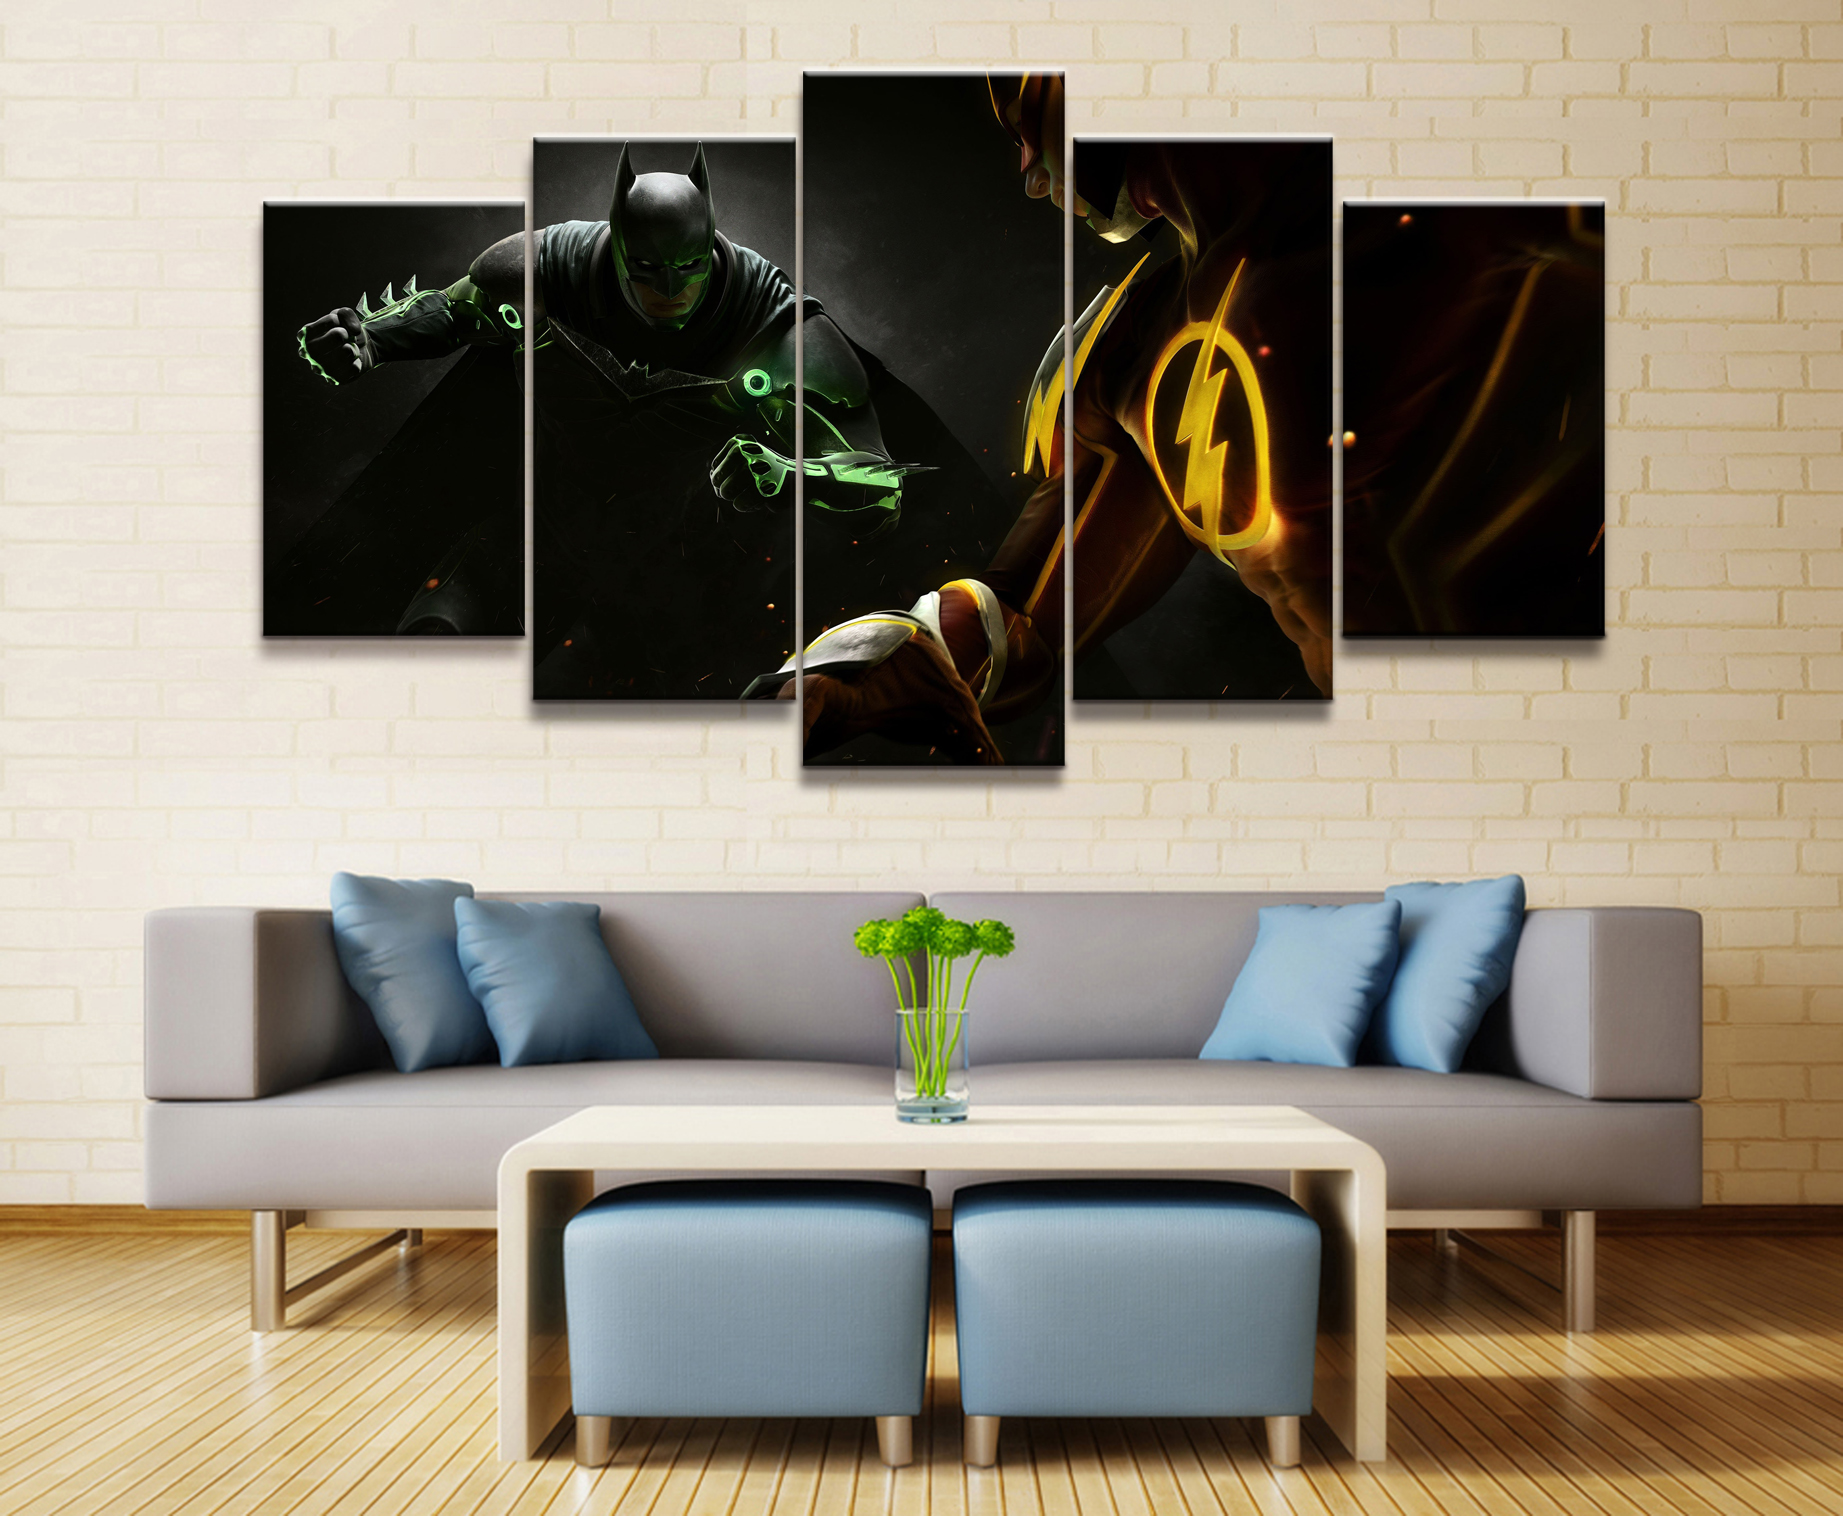 5 Panel DC Flash Batman Movie Cartoon Canvas Printed Painting For Living Room Wall Art Home